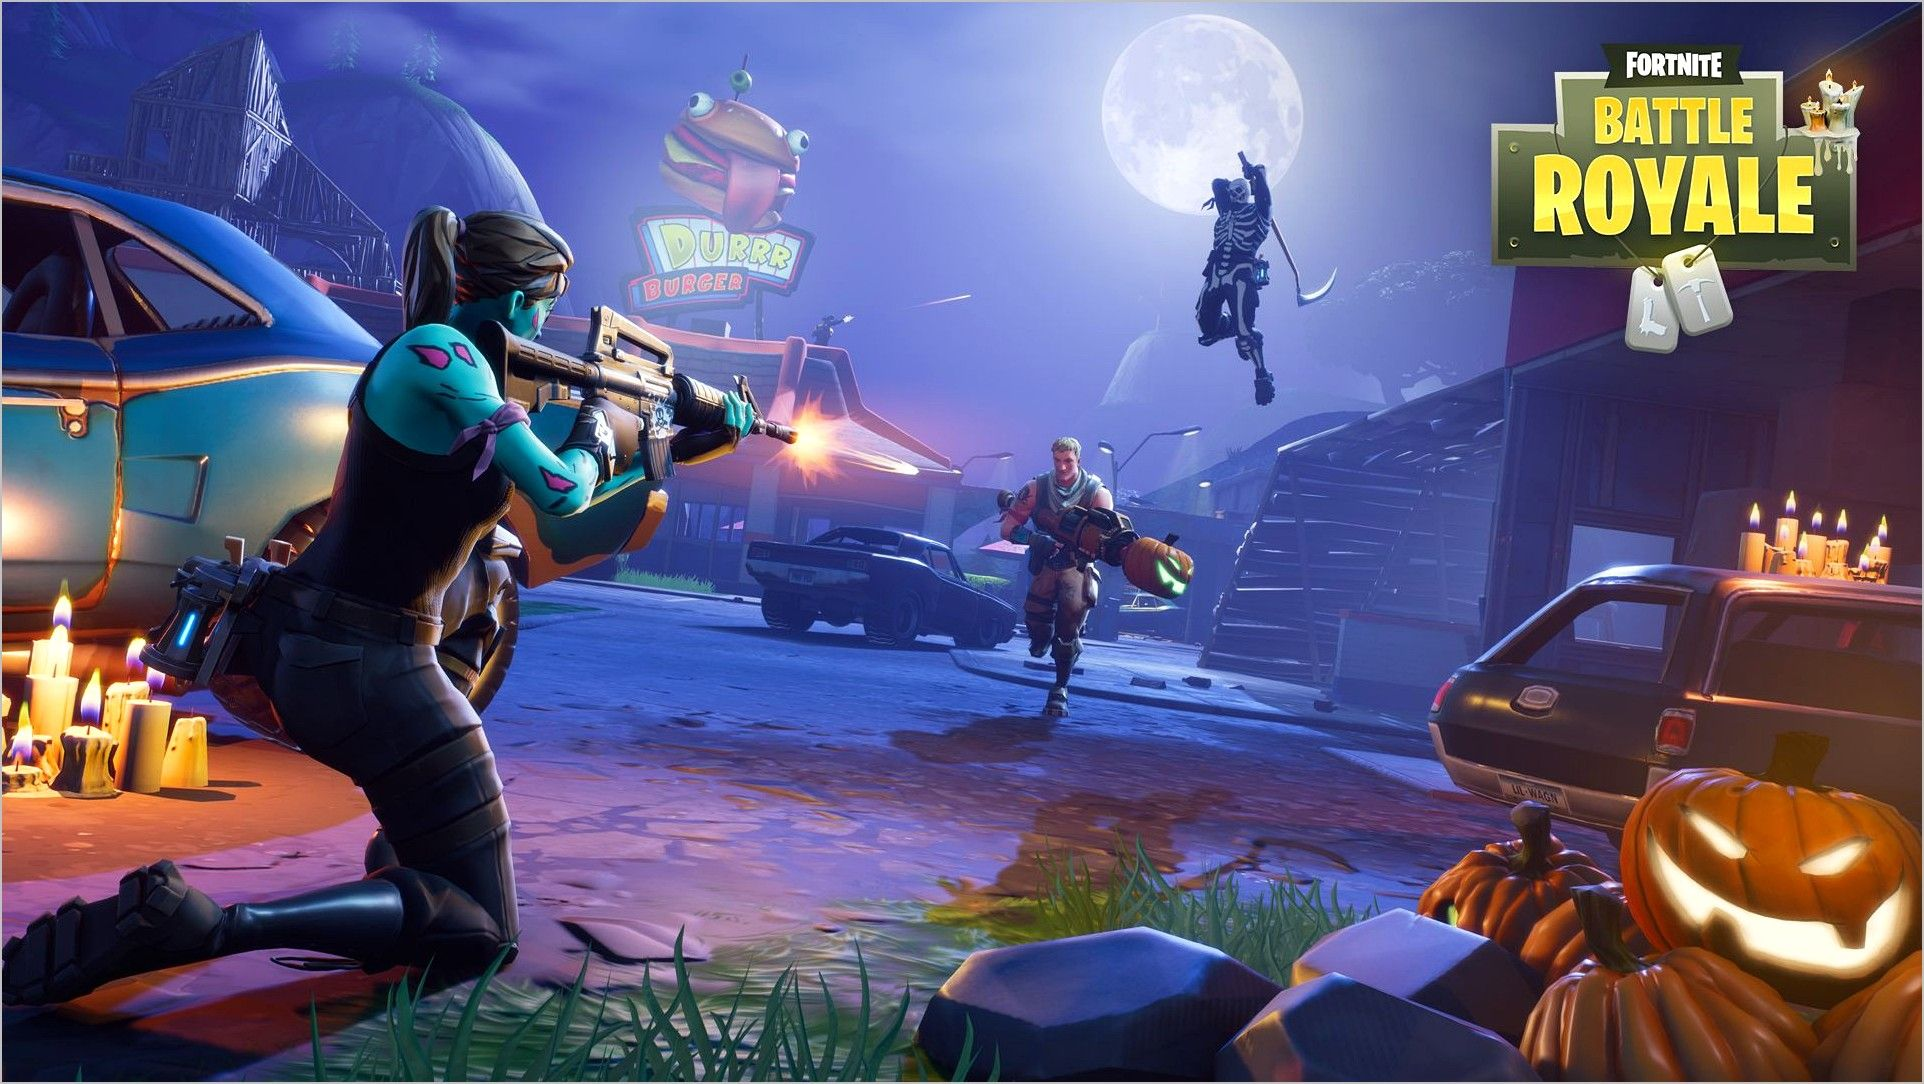 Fortnite Wallpaper 4k 1920 X 1080 In 2020 Fortnite Game Cheats Android Games